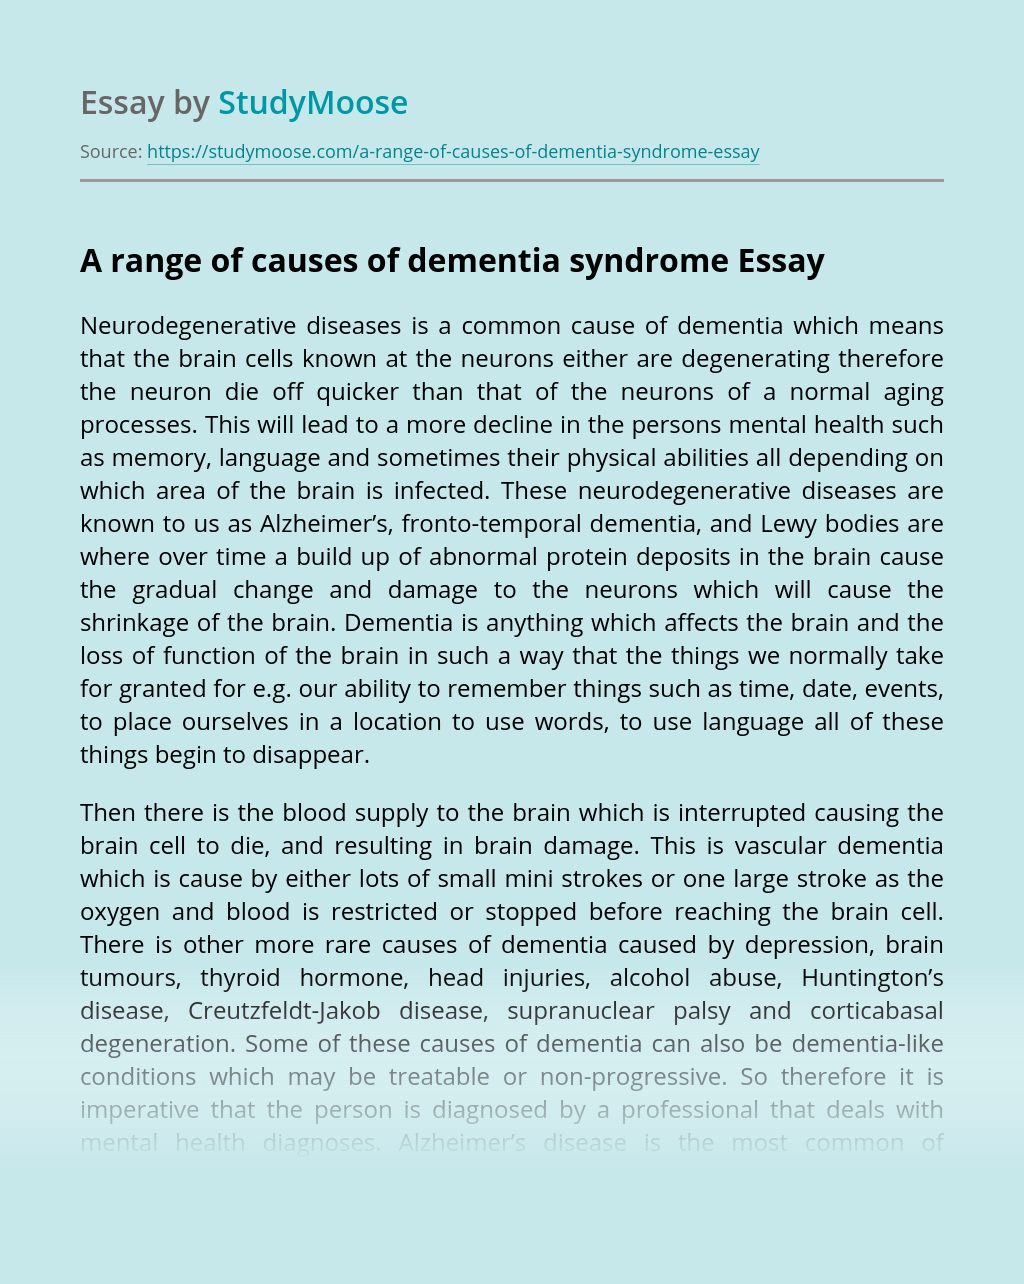 A range of causes of dementia syndrome